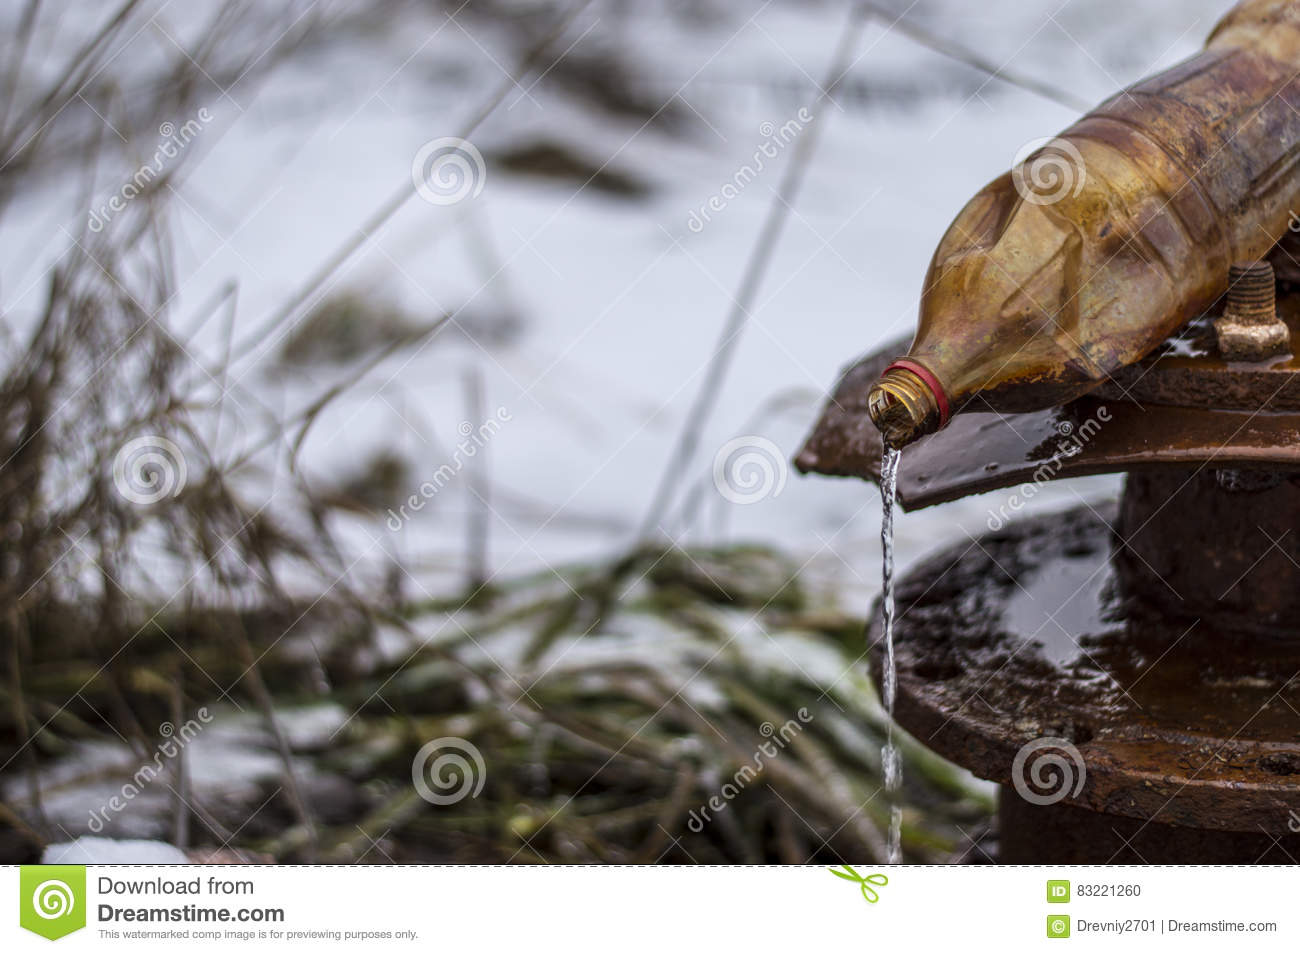 Rusty Old Faucet On A Spring In The Village Stock Photo - Image of ...